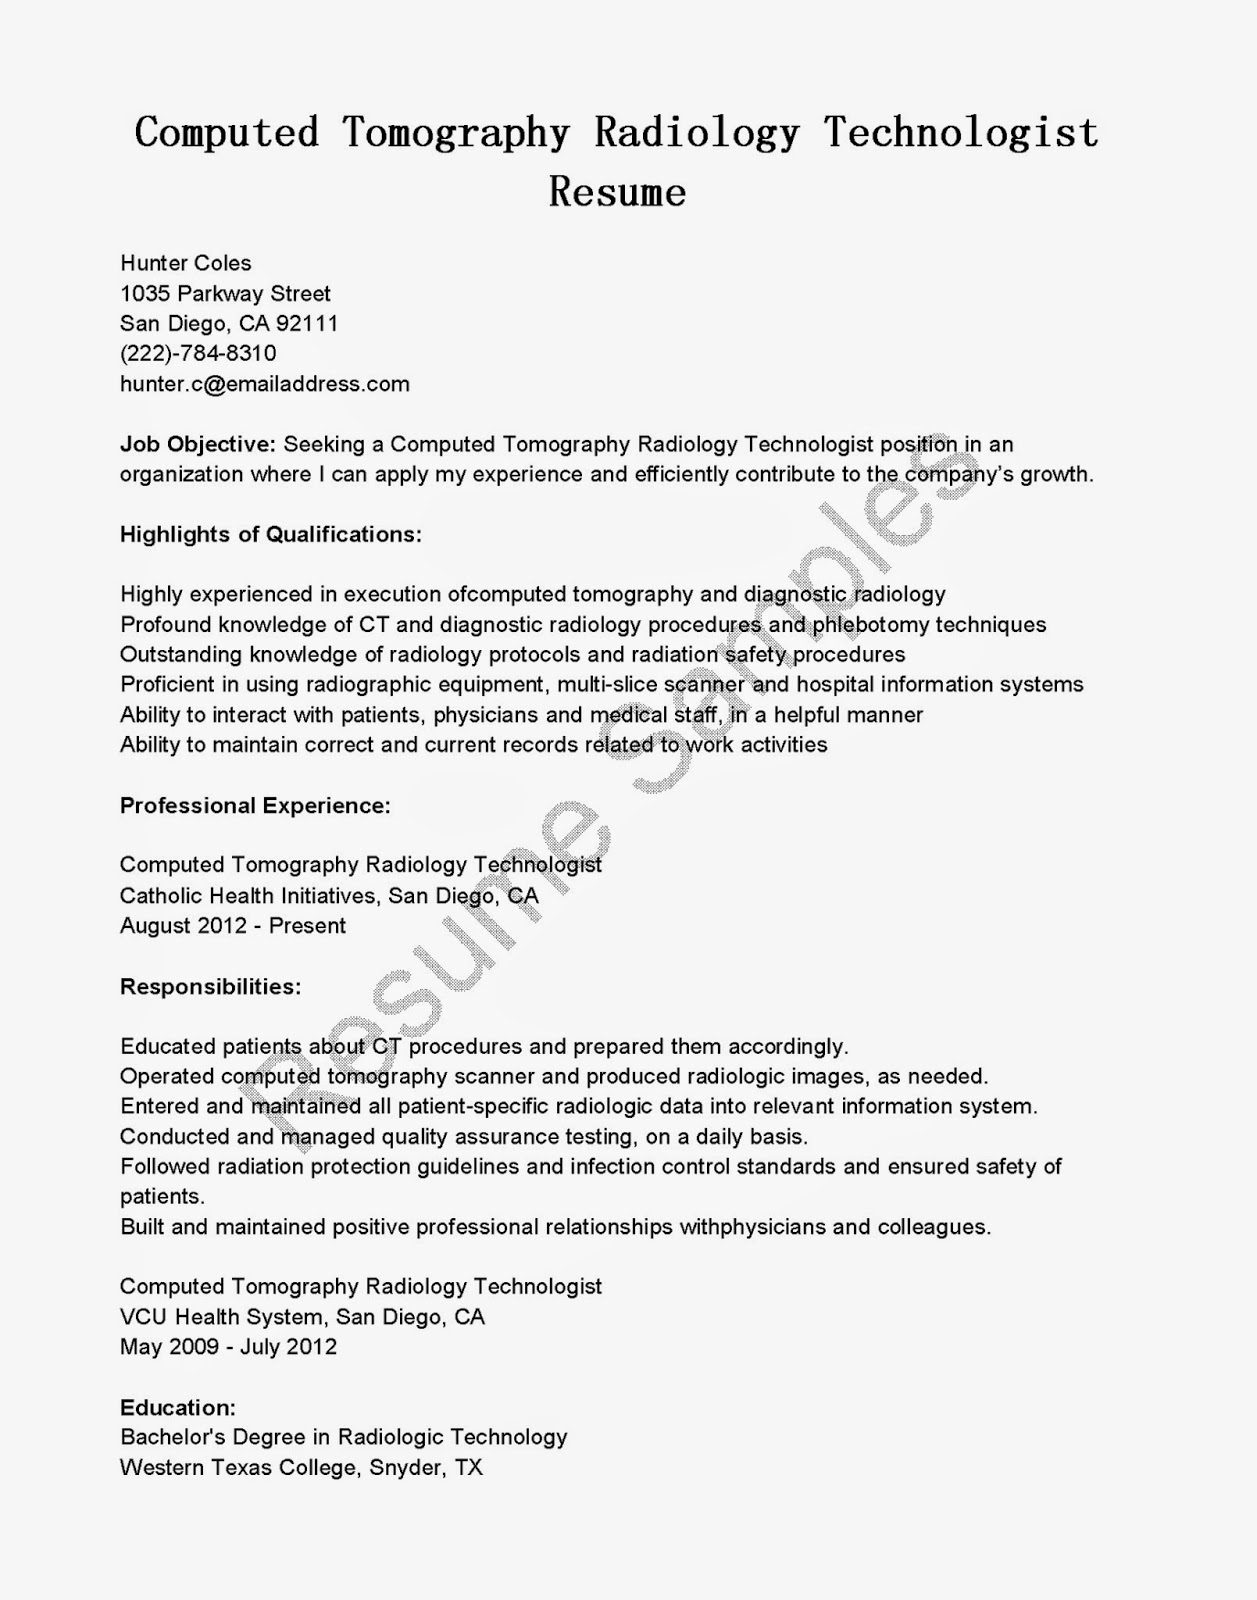 Radiologic Technologist Sample Resume 25.07.2017